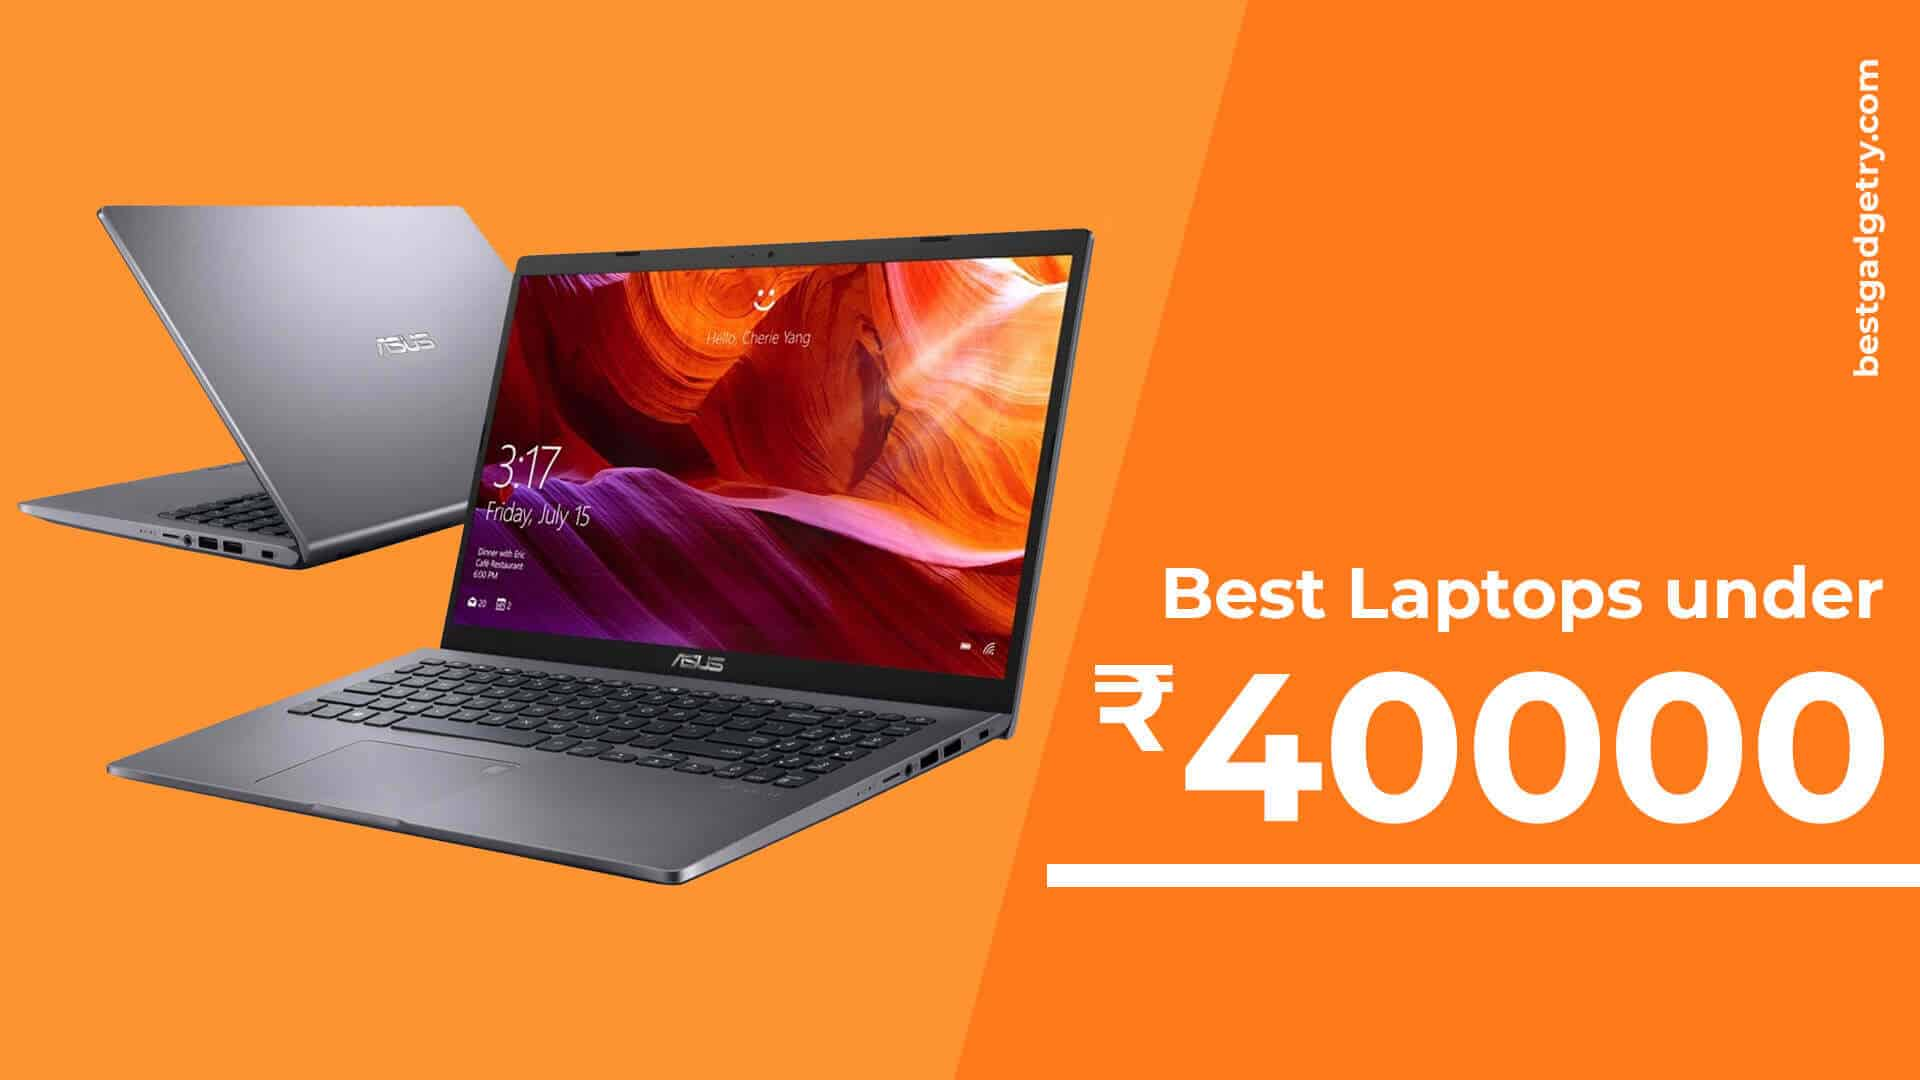 Best Gaming Laptops under 40000 in India